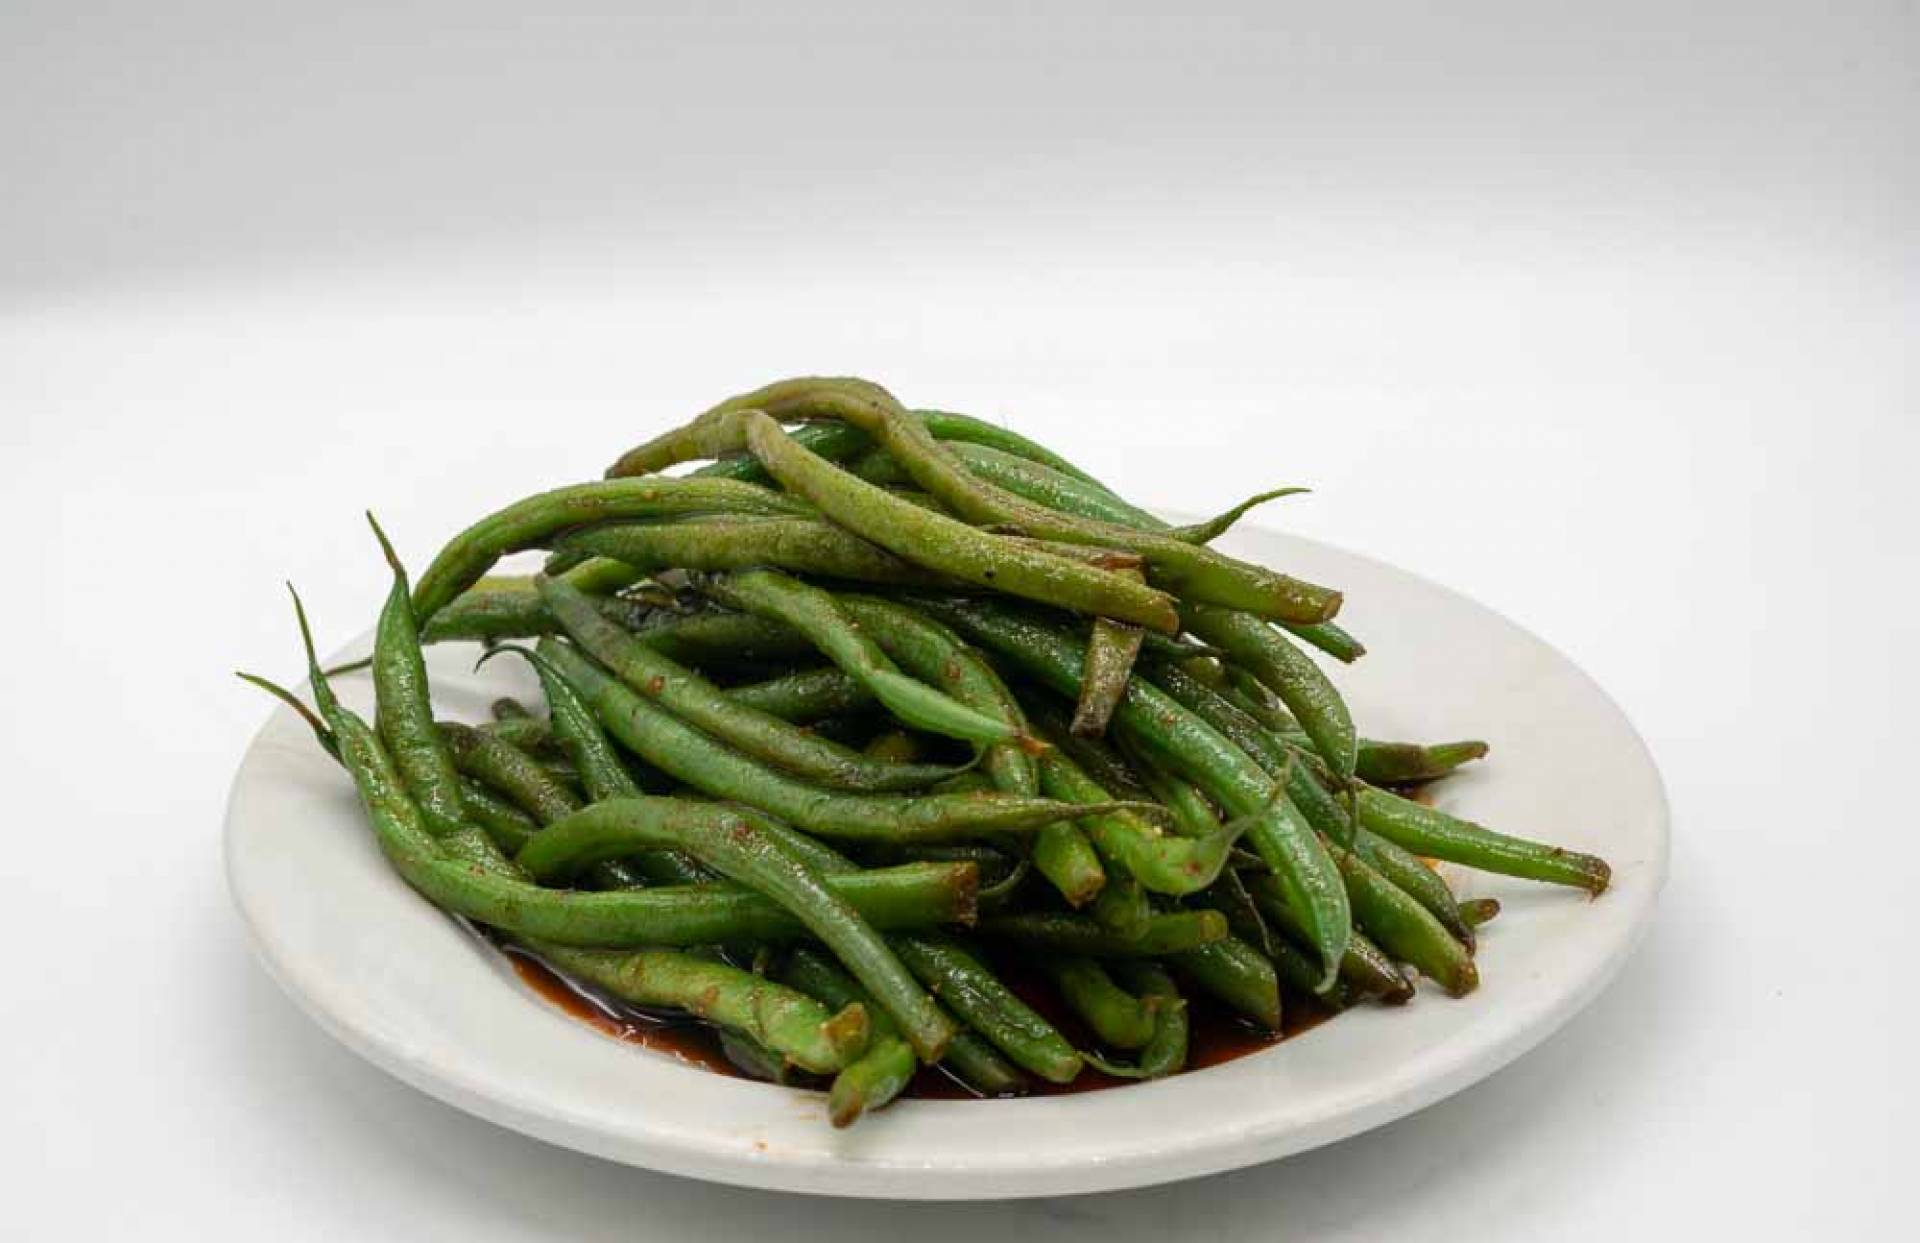 Organic Roasted Green Beans (1/2 pound)